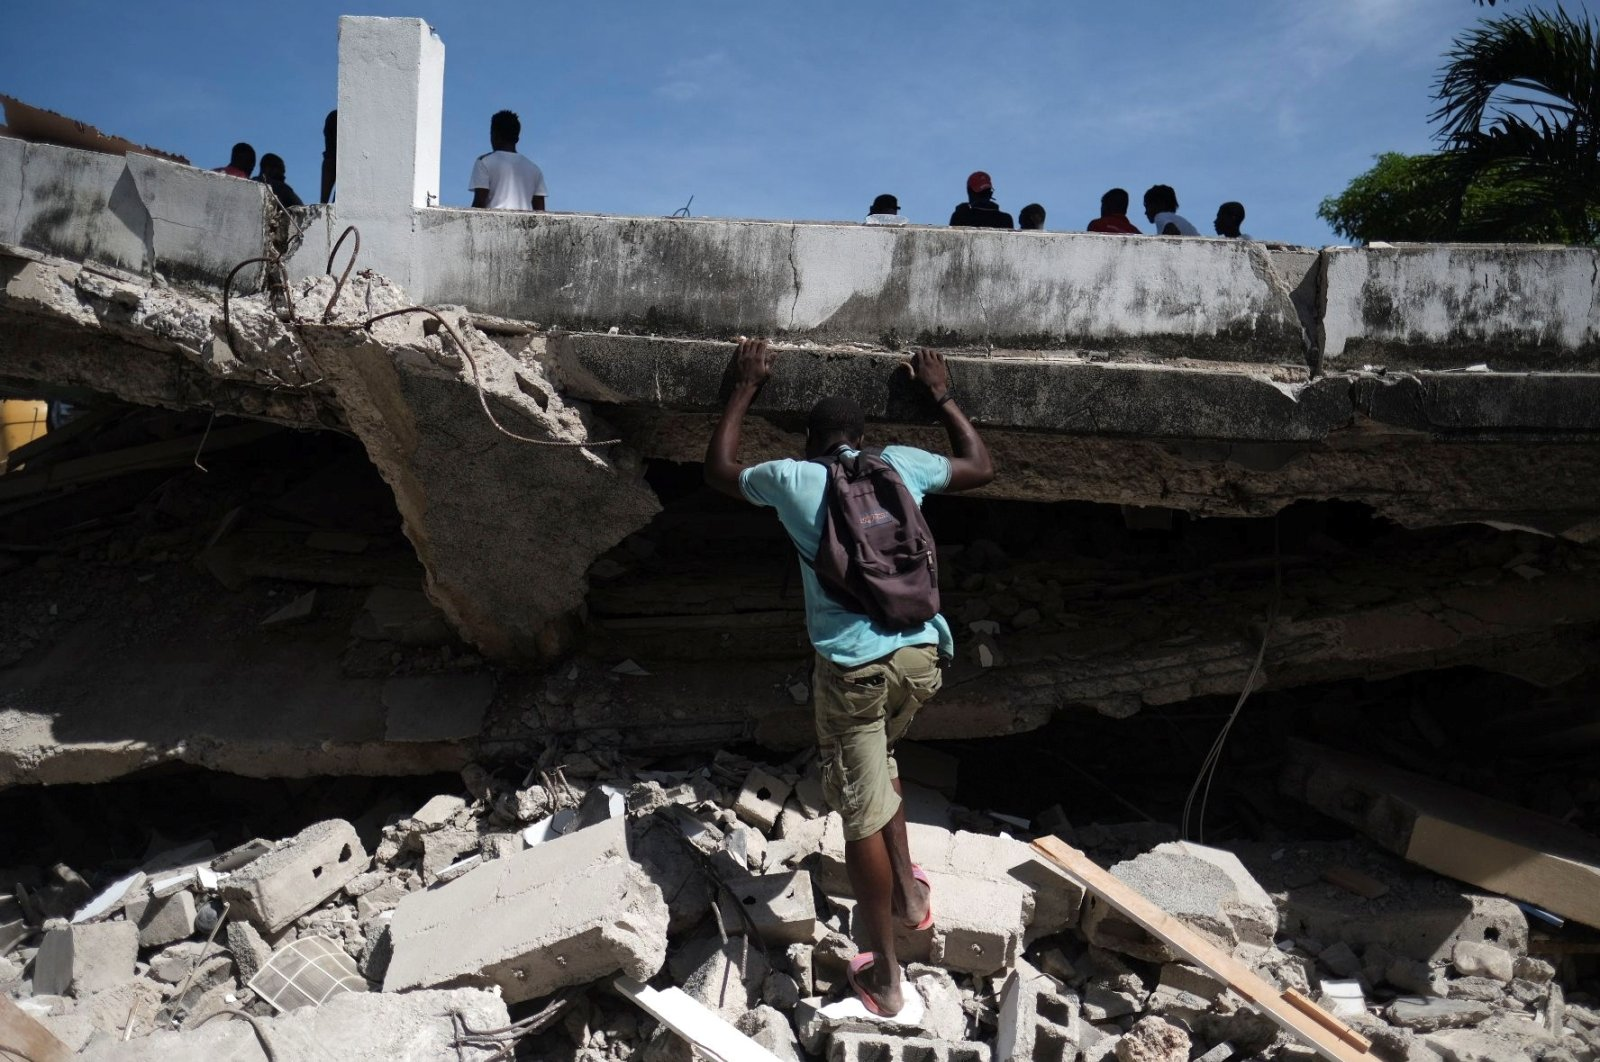 A man searches the site of a collapsed hotel after Saturday's 7.2 magnitude quake, in Les Cayes, Haiti, Aug. 16, 2021. (Reuters Photo)